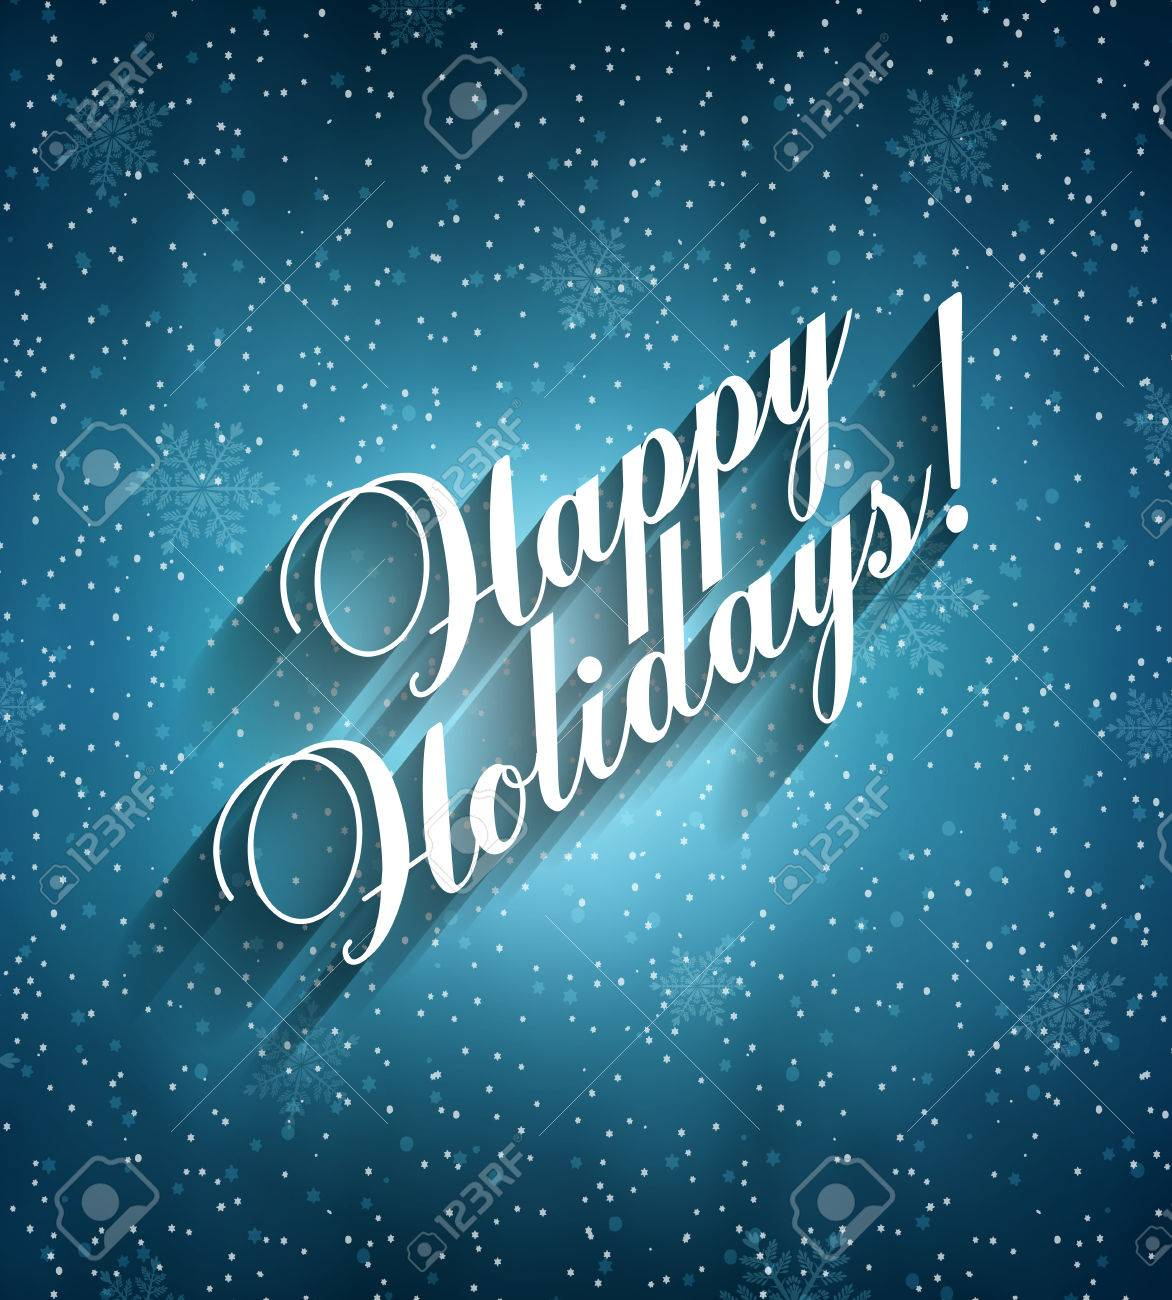 Happy Holidays Background With Snow, Snowflakes And Title Inscription With Shadow - 48130104